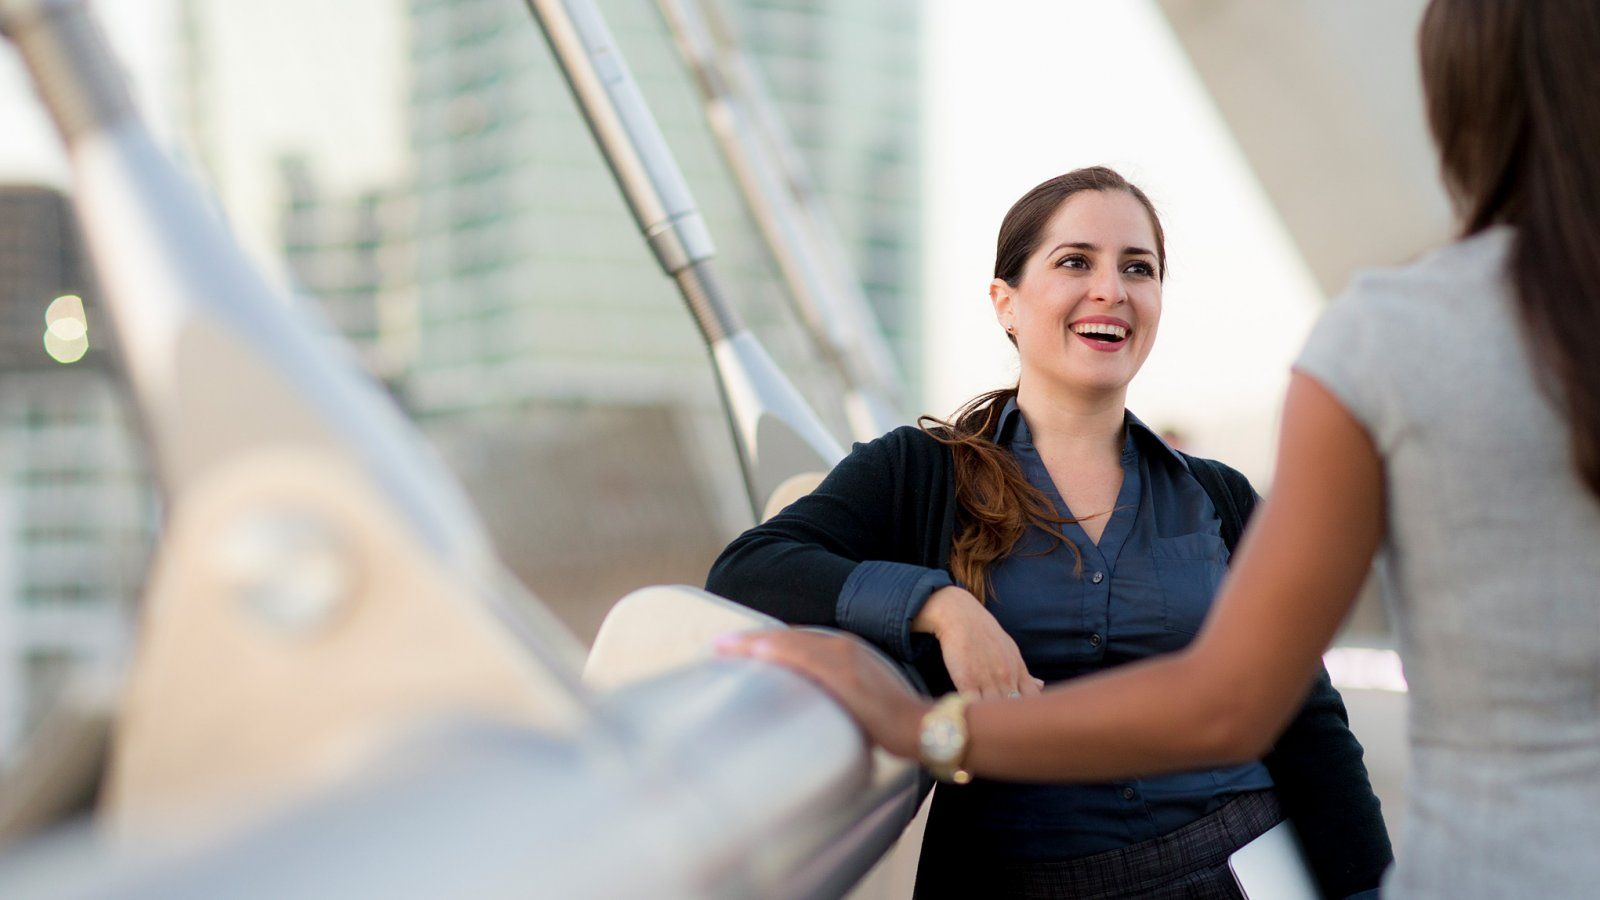 Woman converses with another woman on a pedestrian bridge